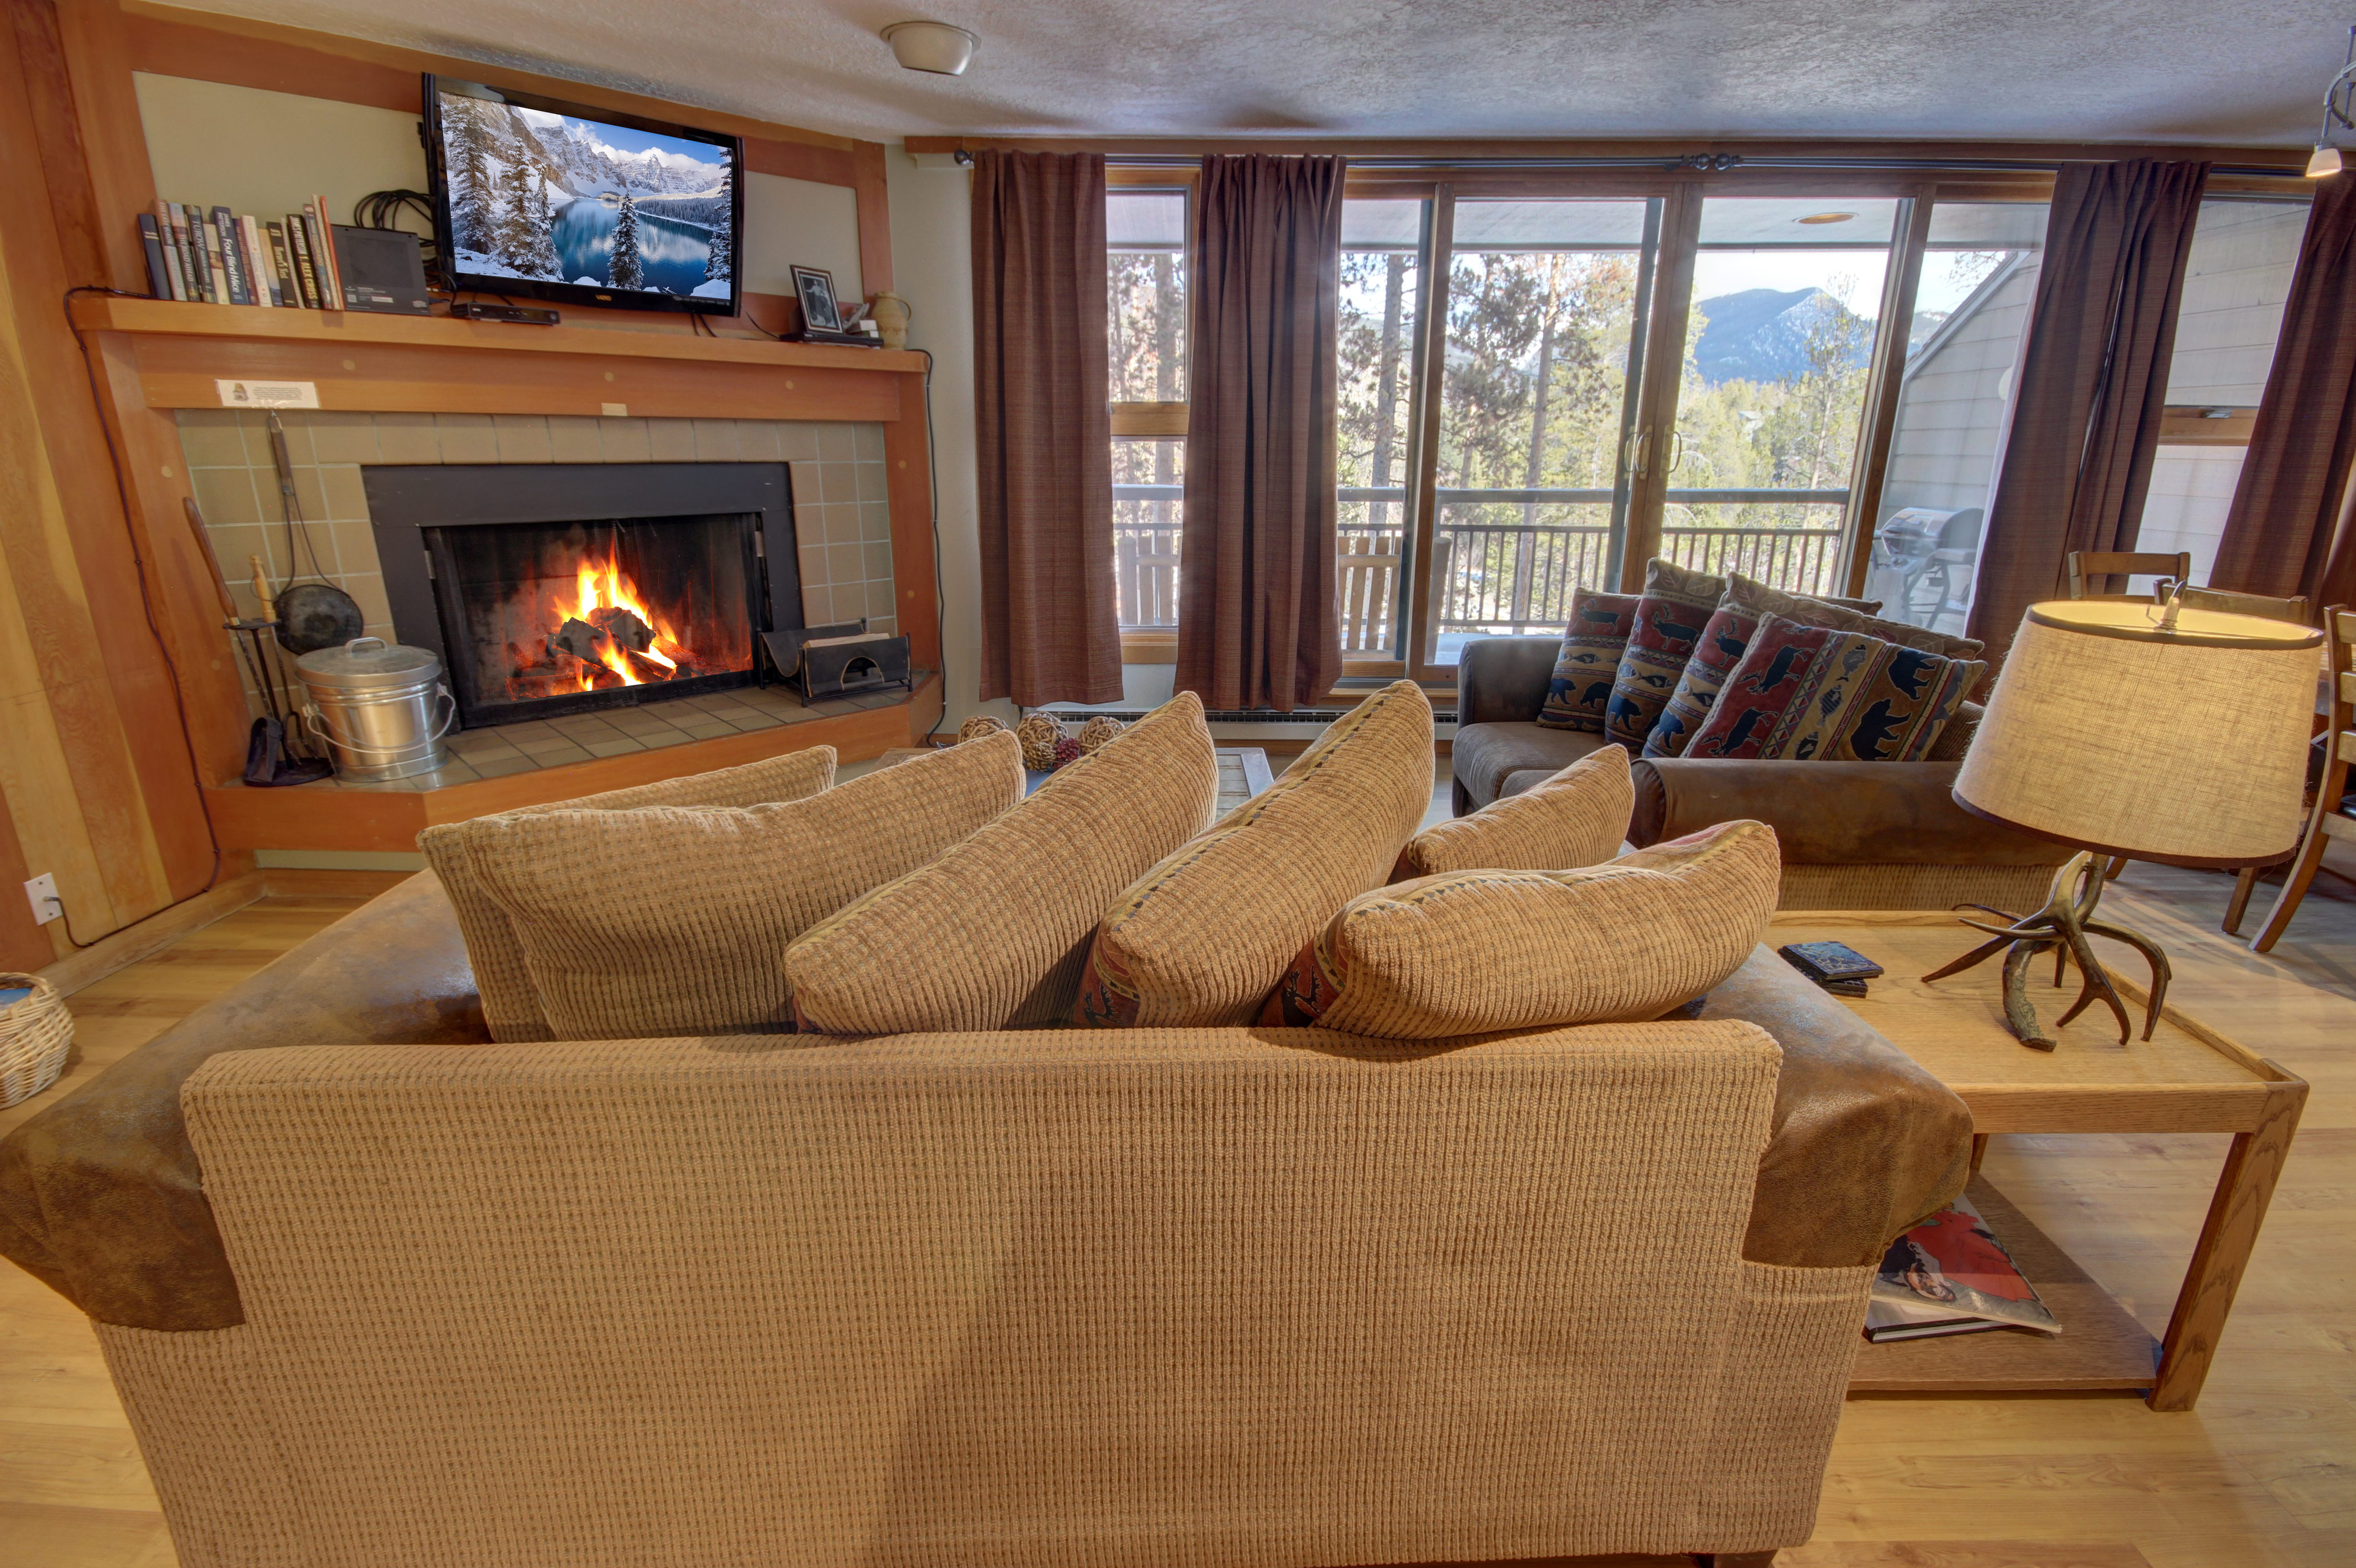 Living room with comfy couches and cozy fireplaces